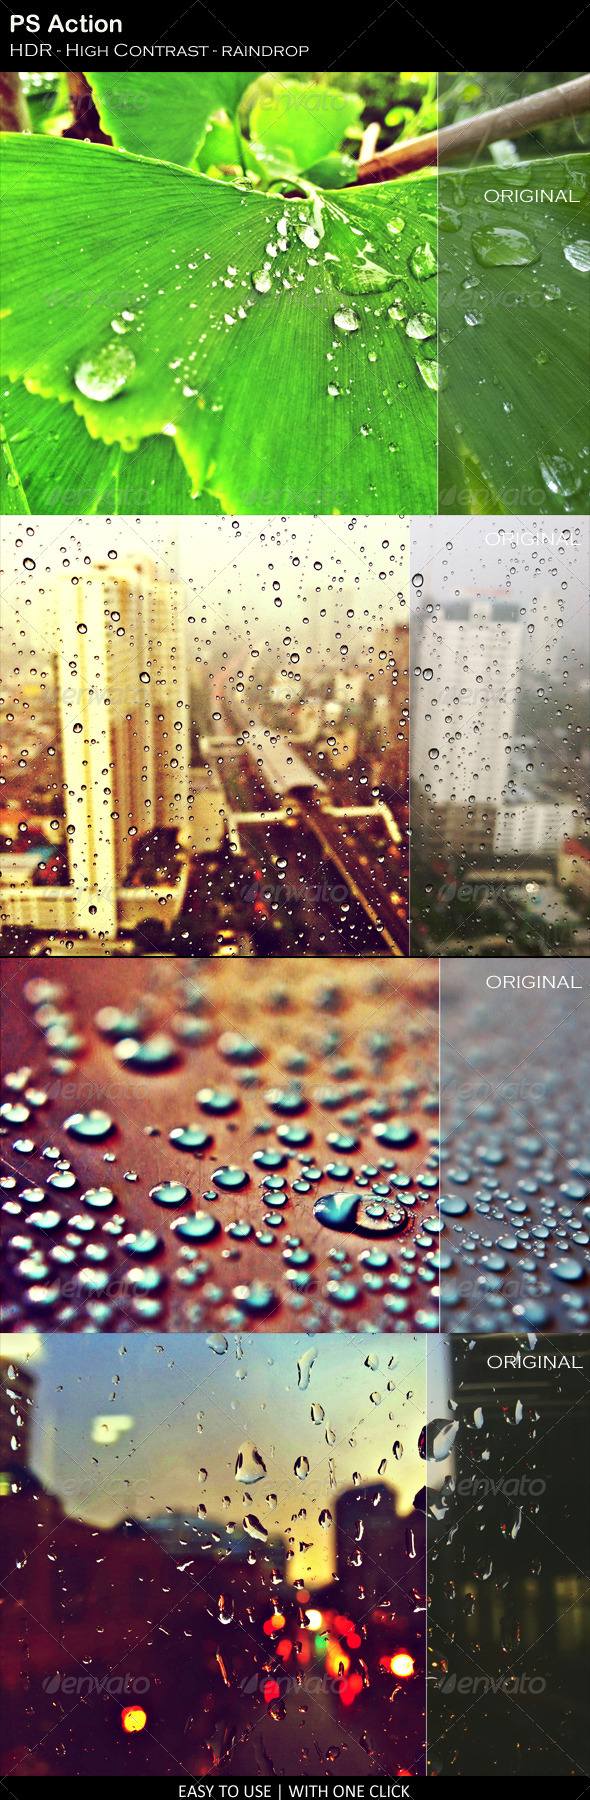 GraphicRiver HDR Raindrop PS Action 7632403